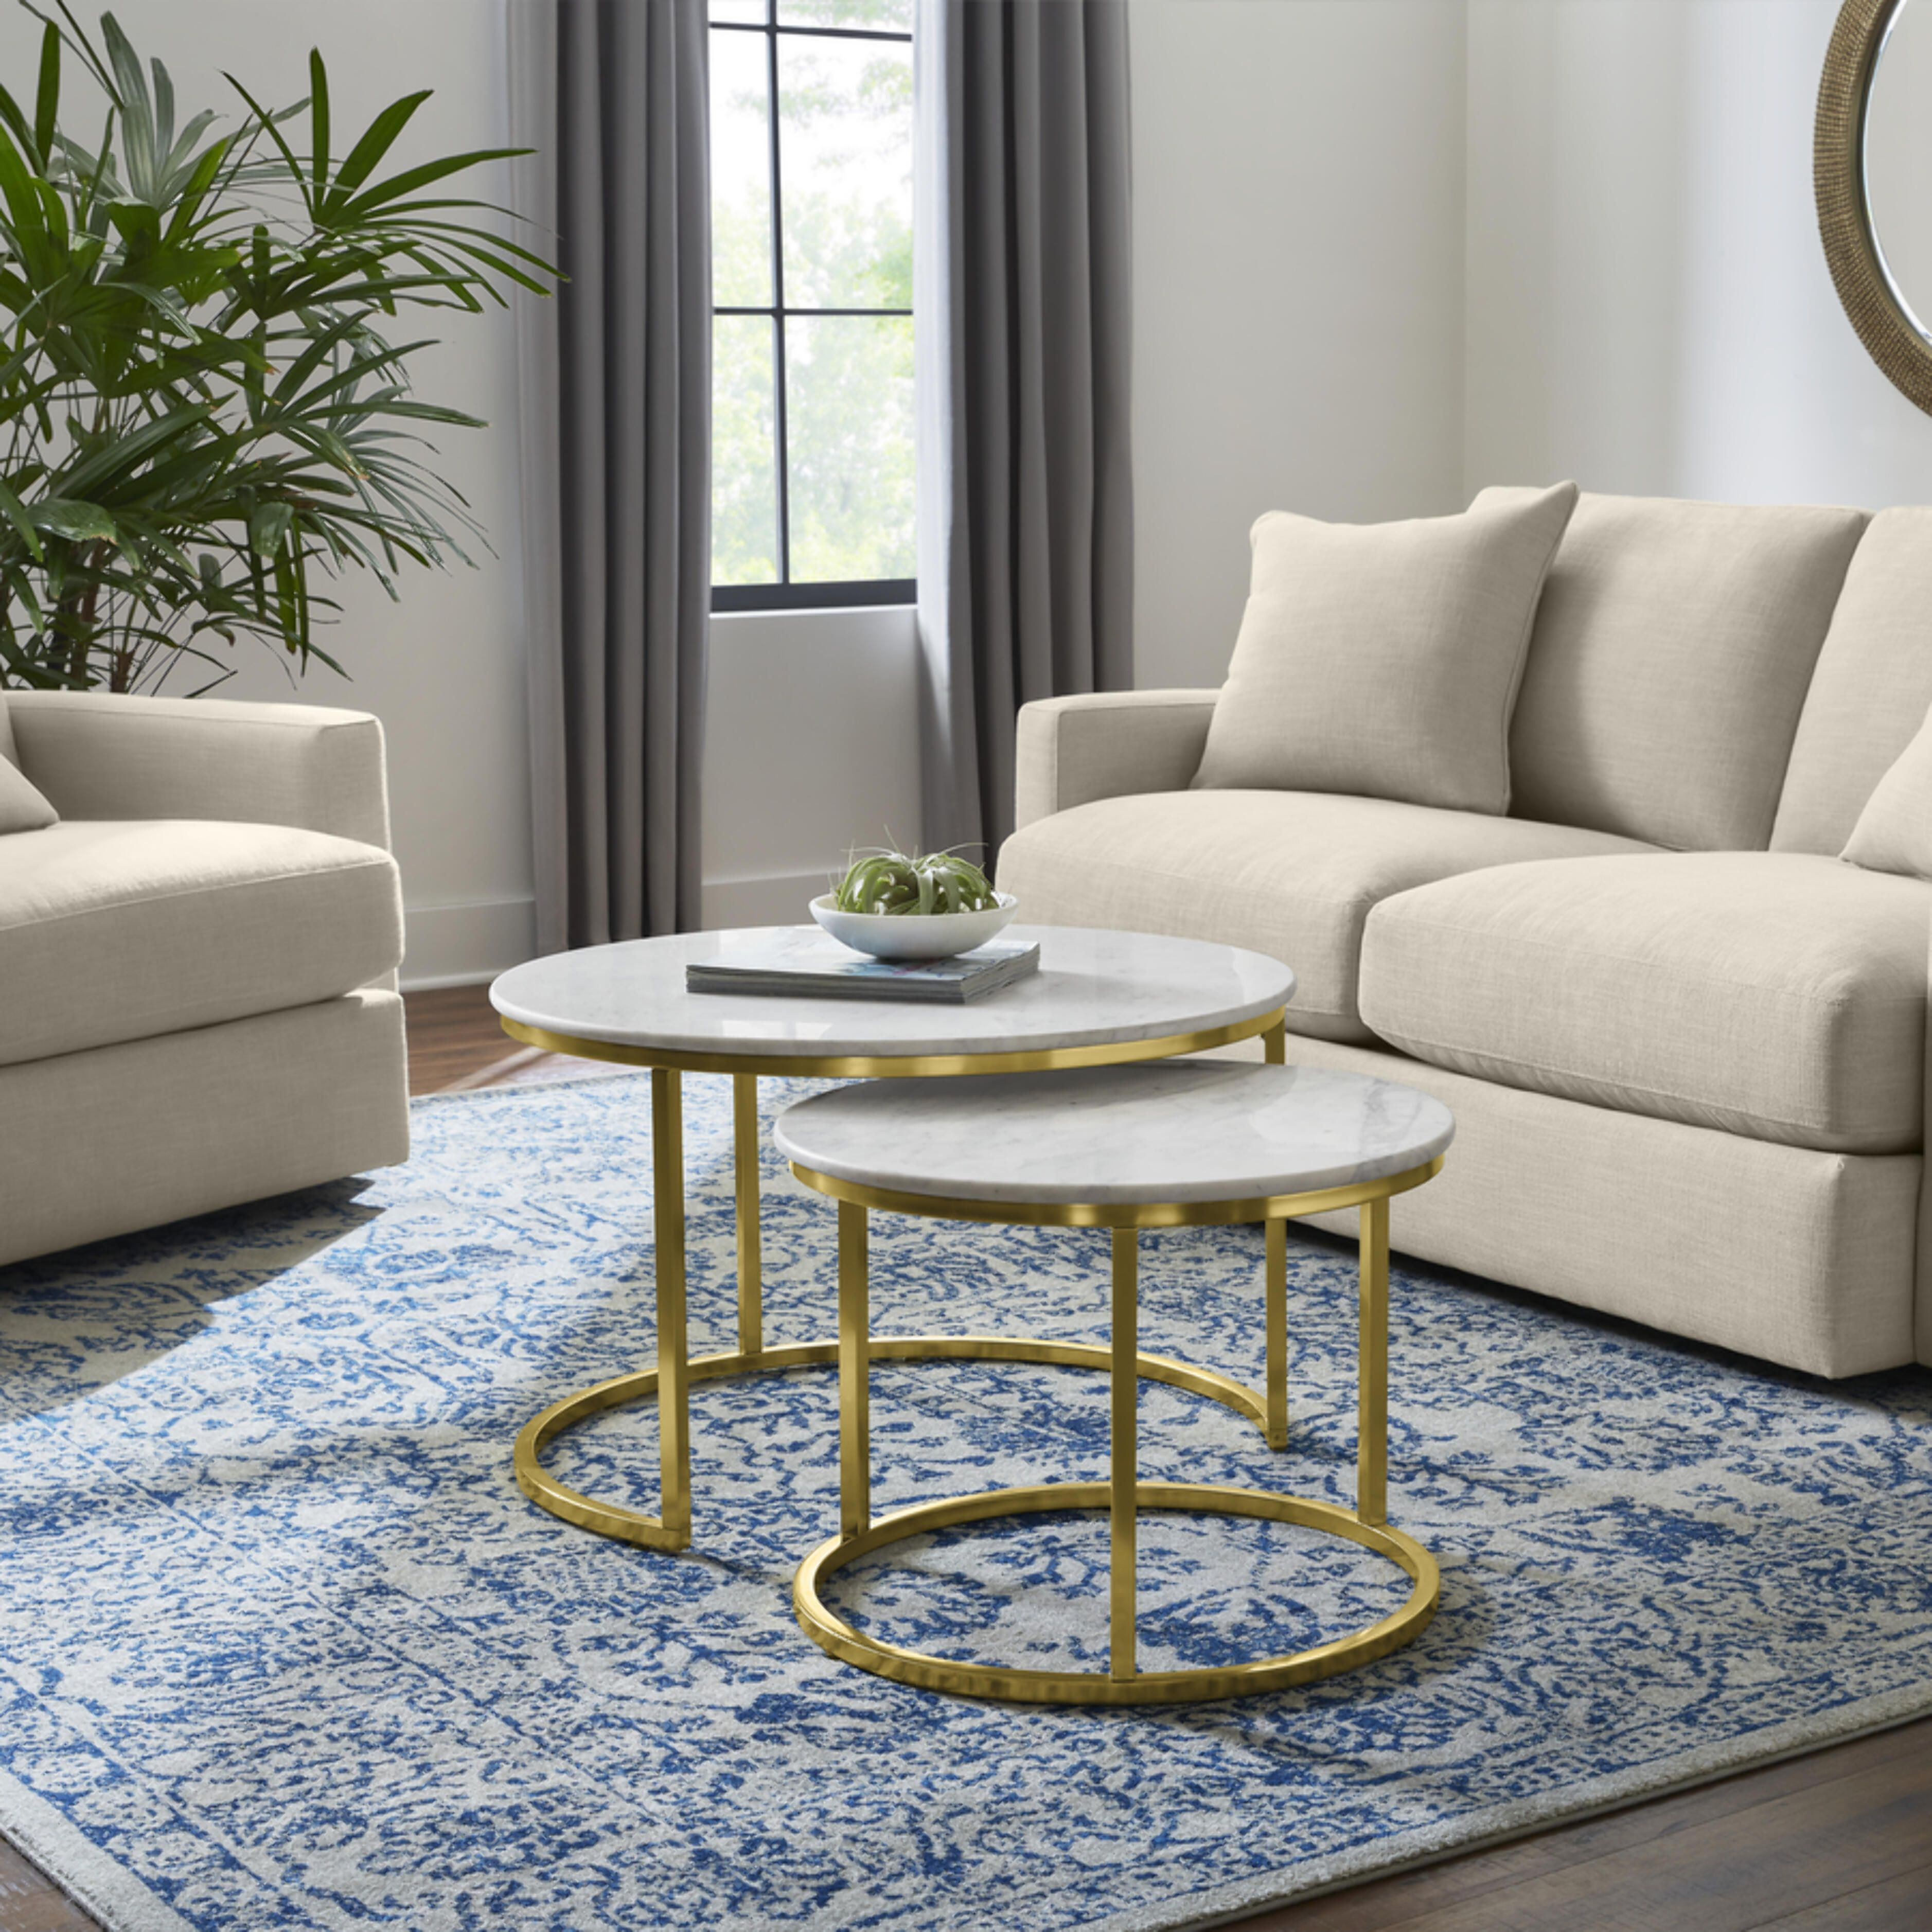 Home Decorators Collection Cheval 2 Piece 31 In Gold Marble Medium Round Marble Coffee Table Set Dc18 56100 The Home Depot In 2021 Coffee Table Marble Coffee Table Set Marble Round Coffee Table [ 3755 x 3755 Pixel ]